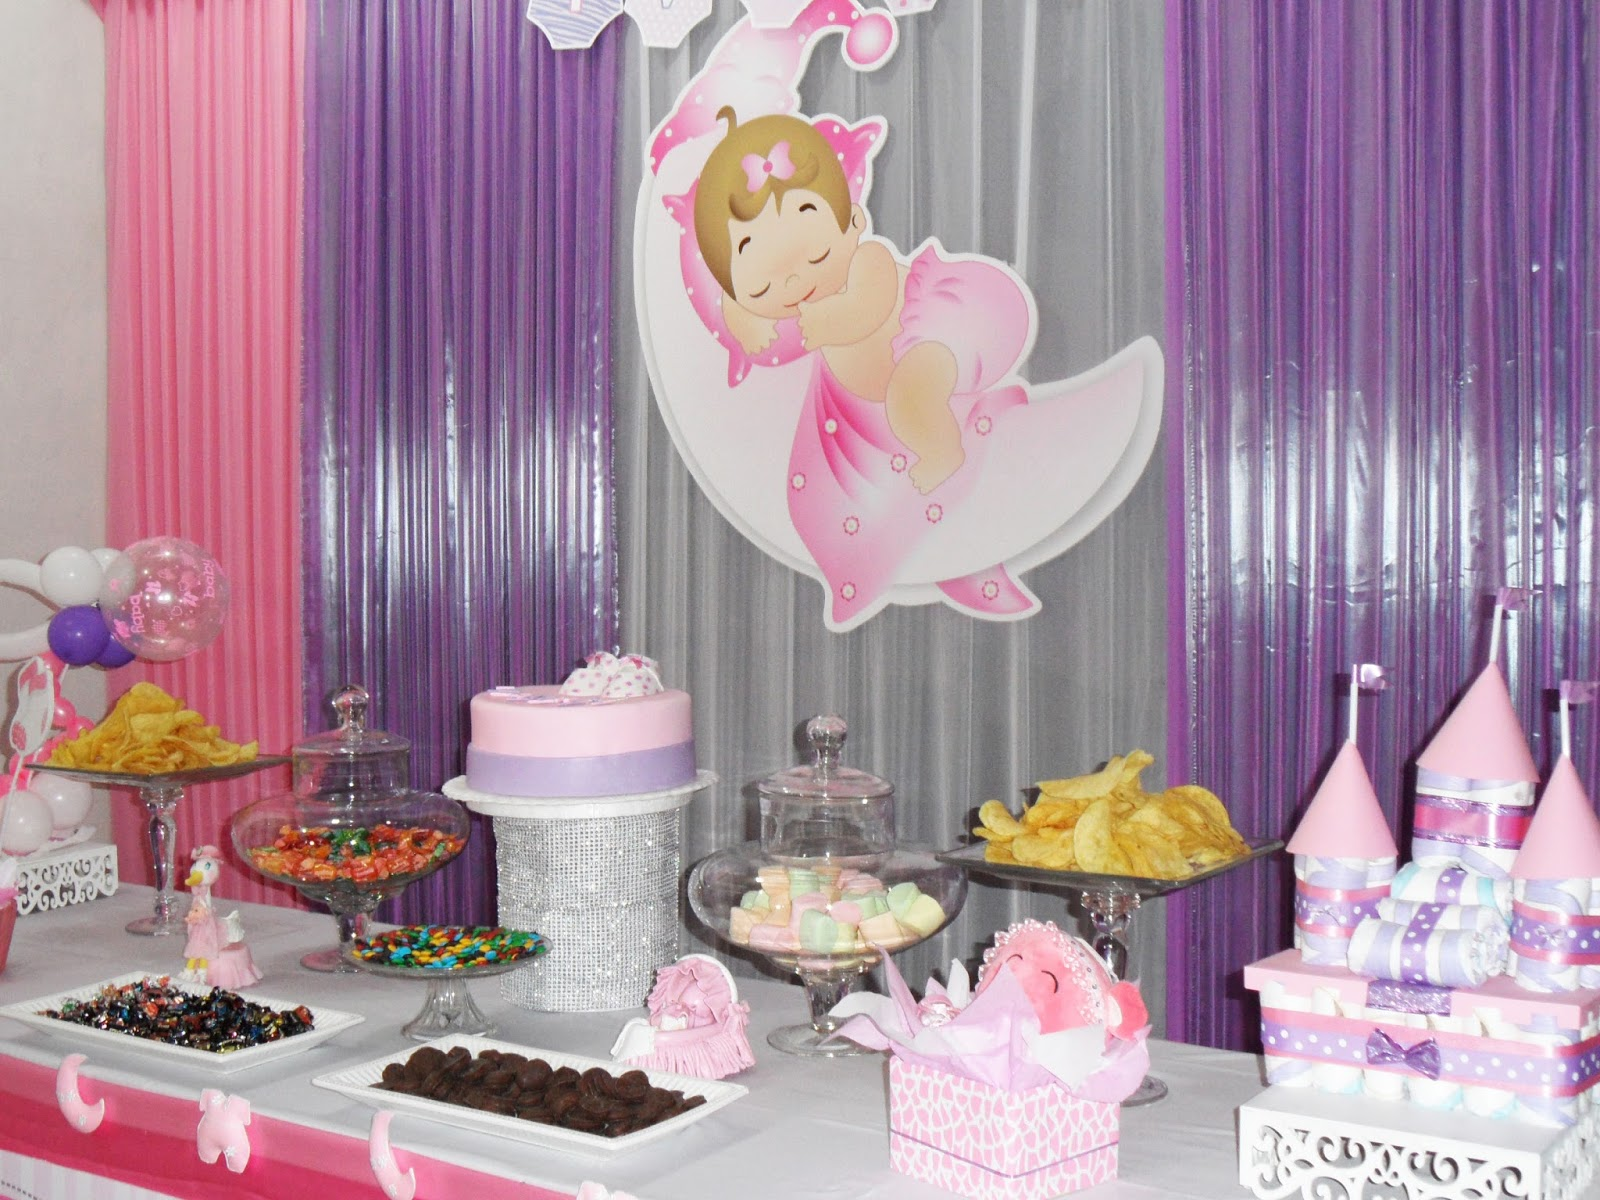 Decoraci n baby shower ni a ivanna baby shower Decoraciones para ninas